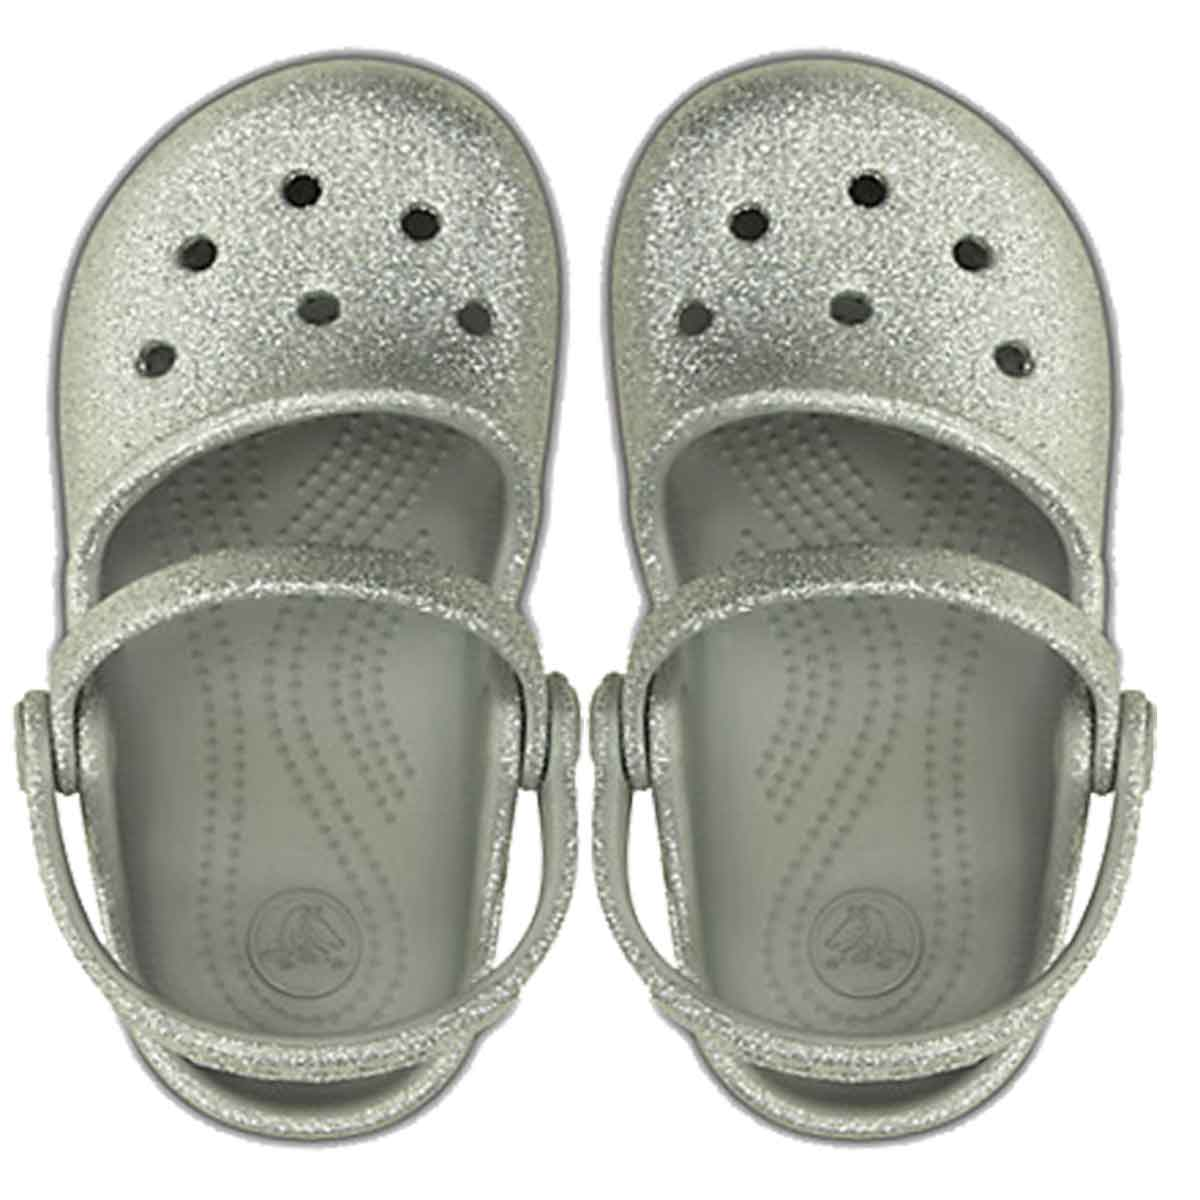 f04993eddff51 Crocs Crocband Flip (White) Online at Lowest Price in India